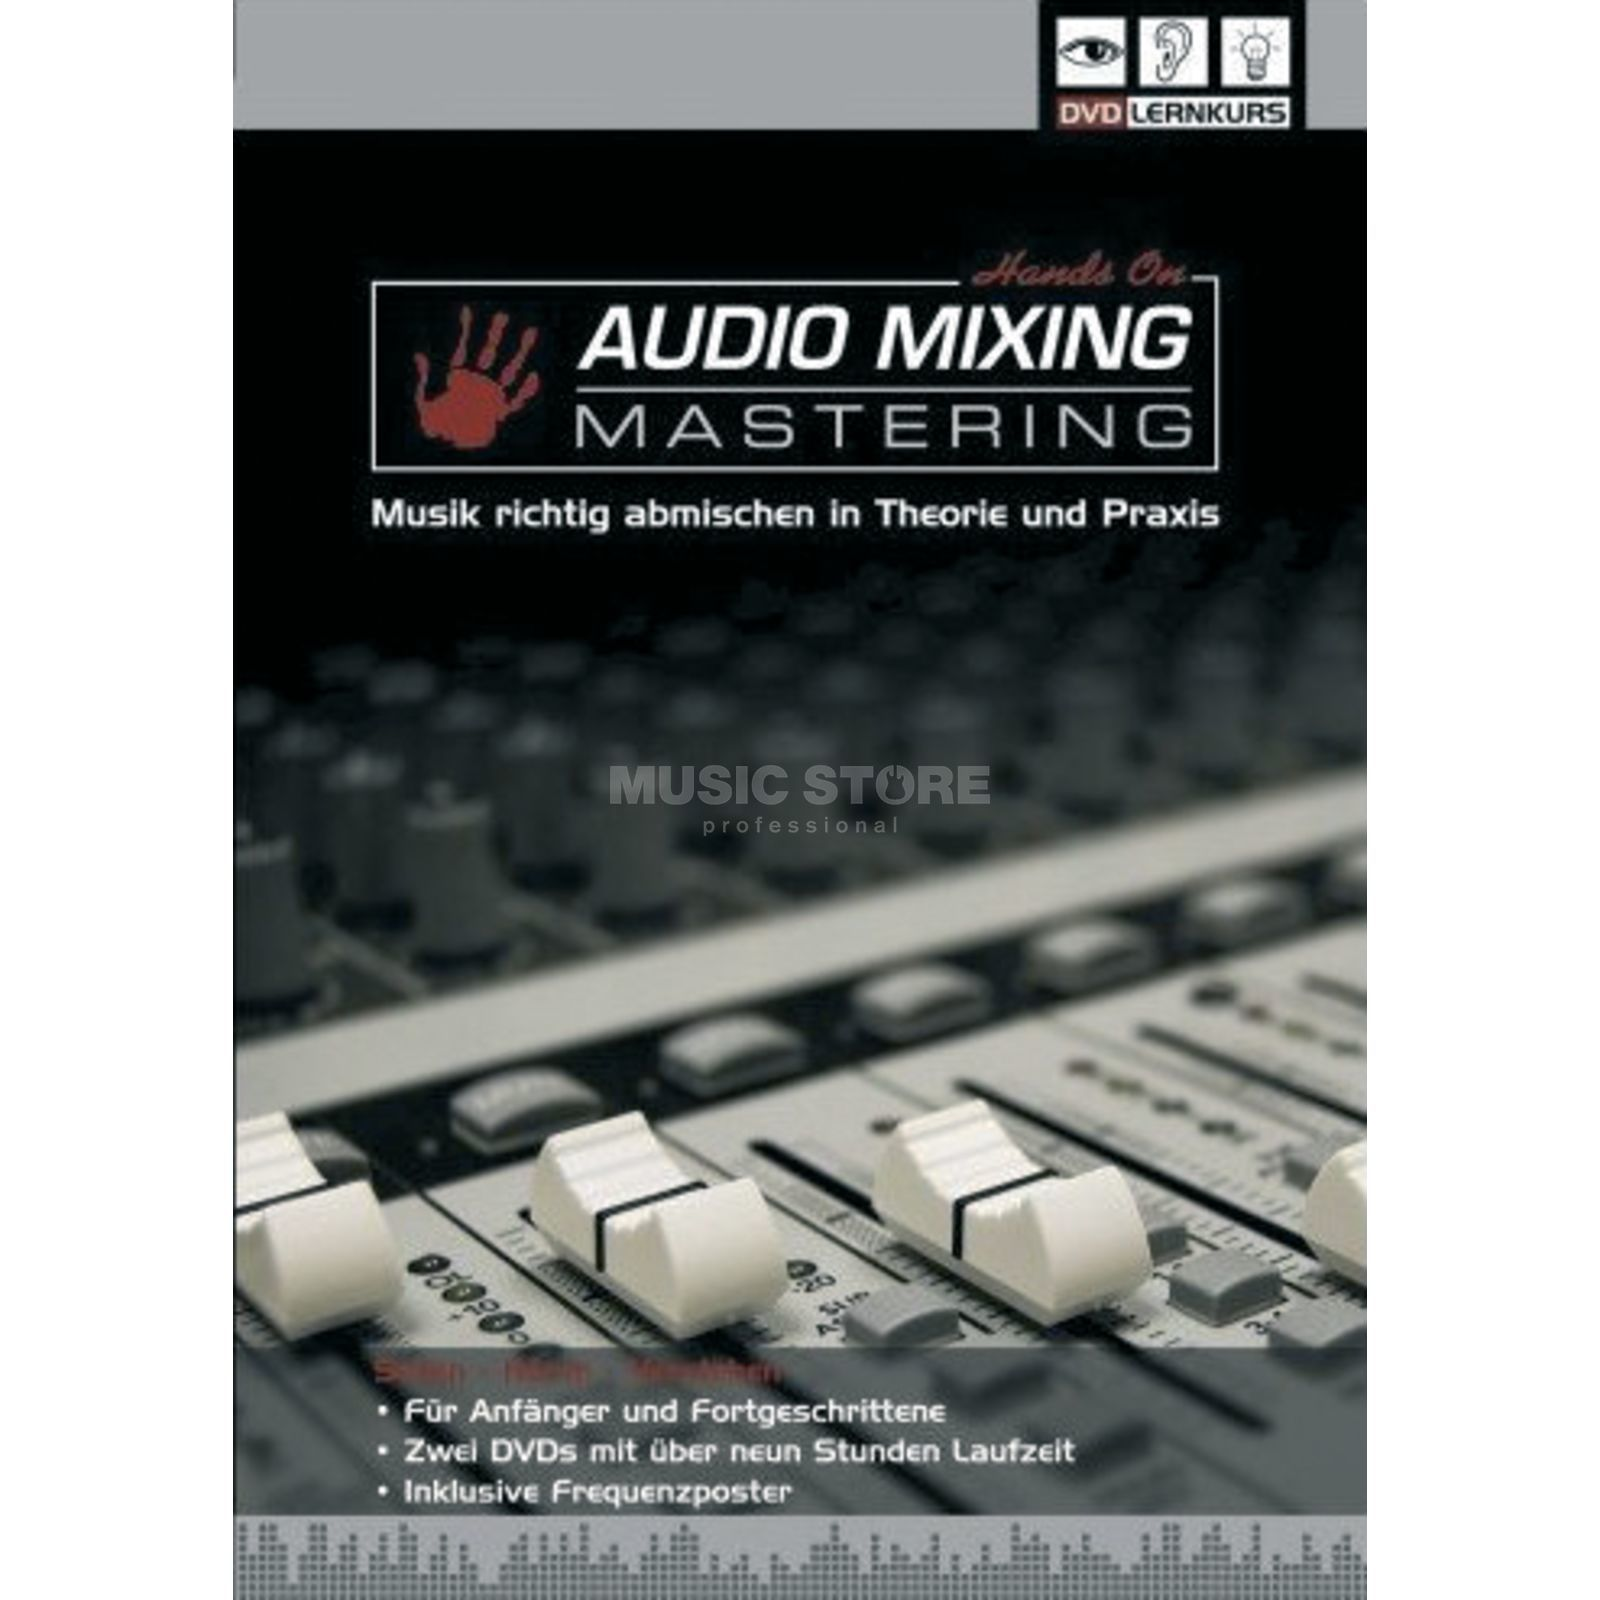 DVD Lernkurs Hands On Mixing & Mastering Basics of Mixing Produktbillede